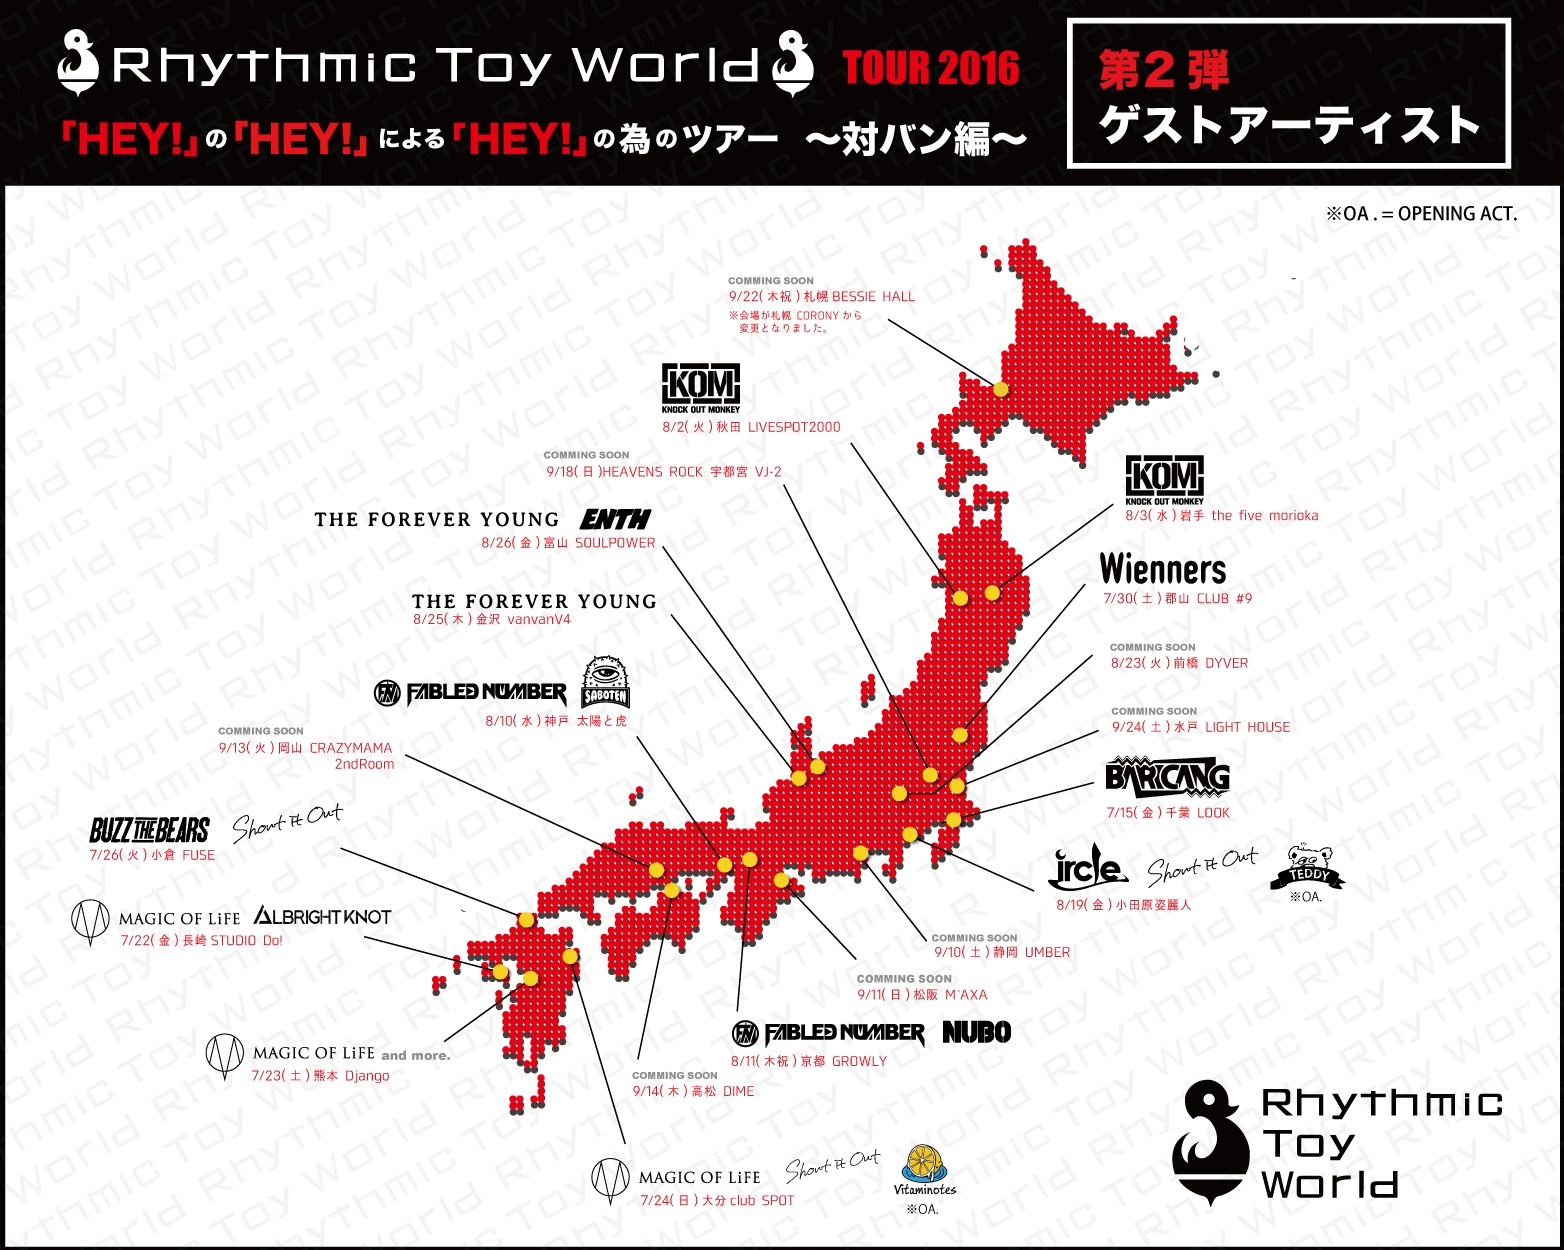 Rhythmic Toy World『「HEY!」の「HEY!」による「HEY!」の為のツアー』